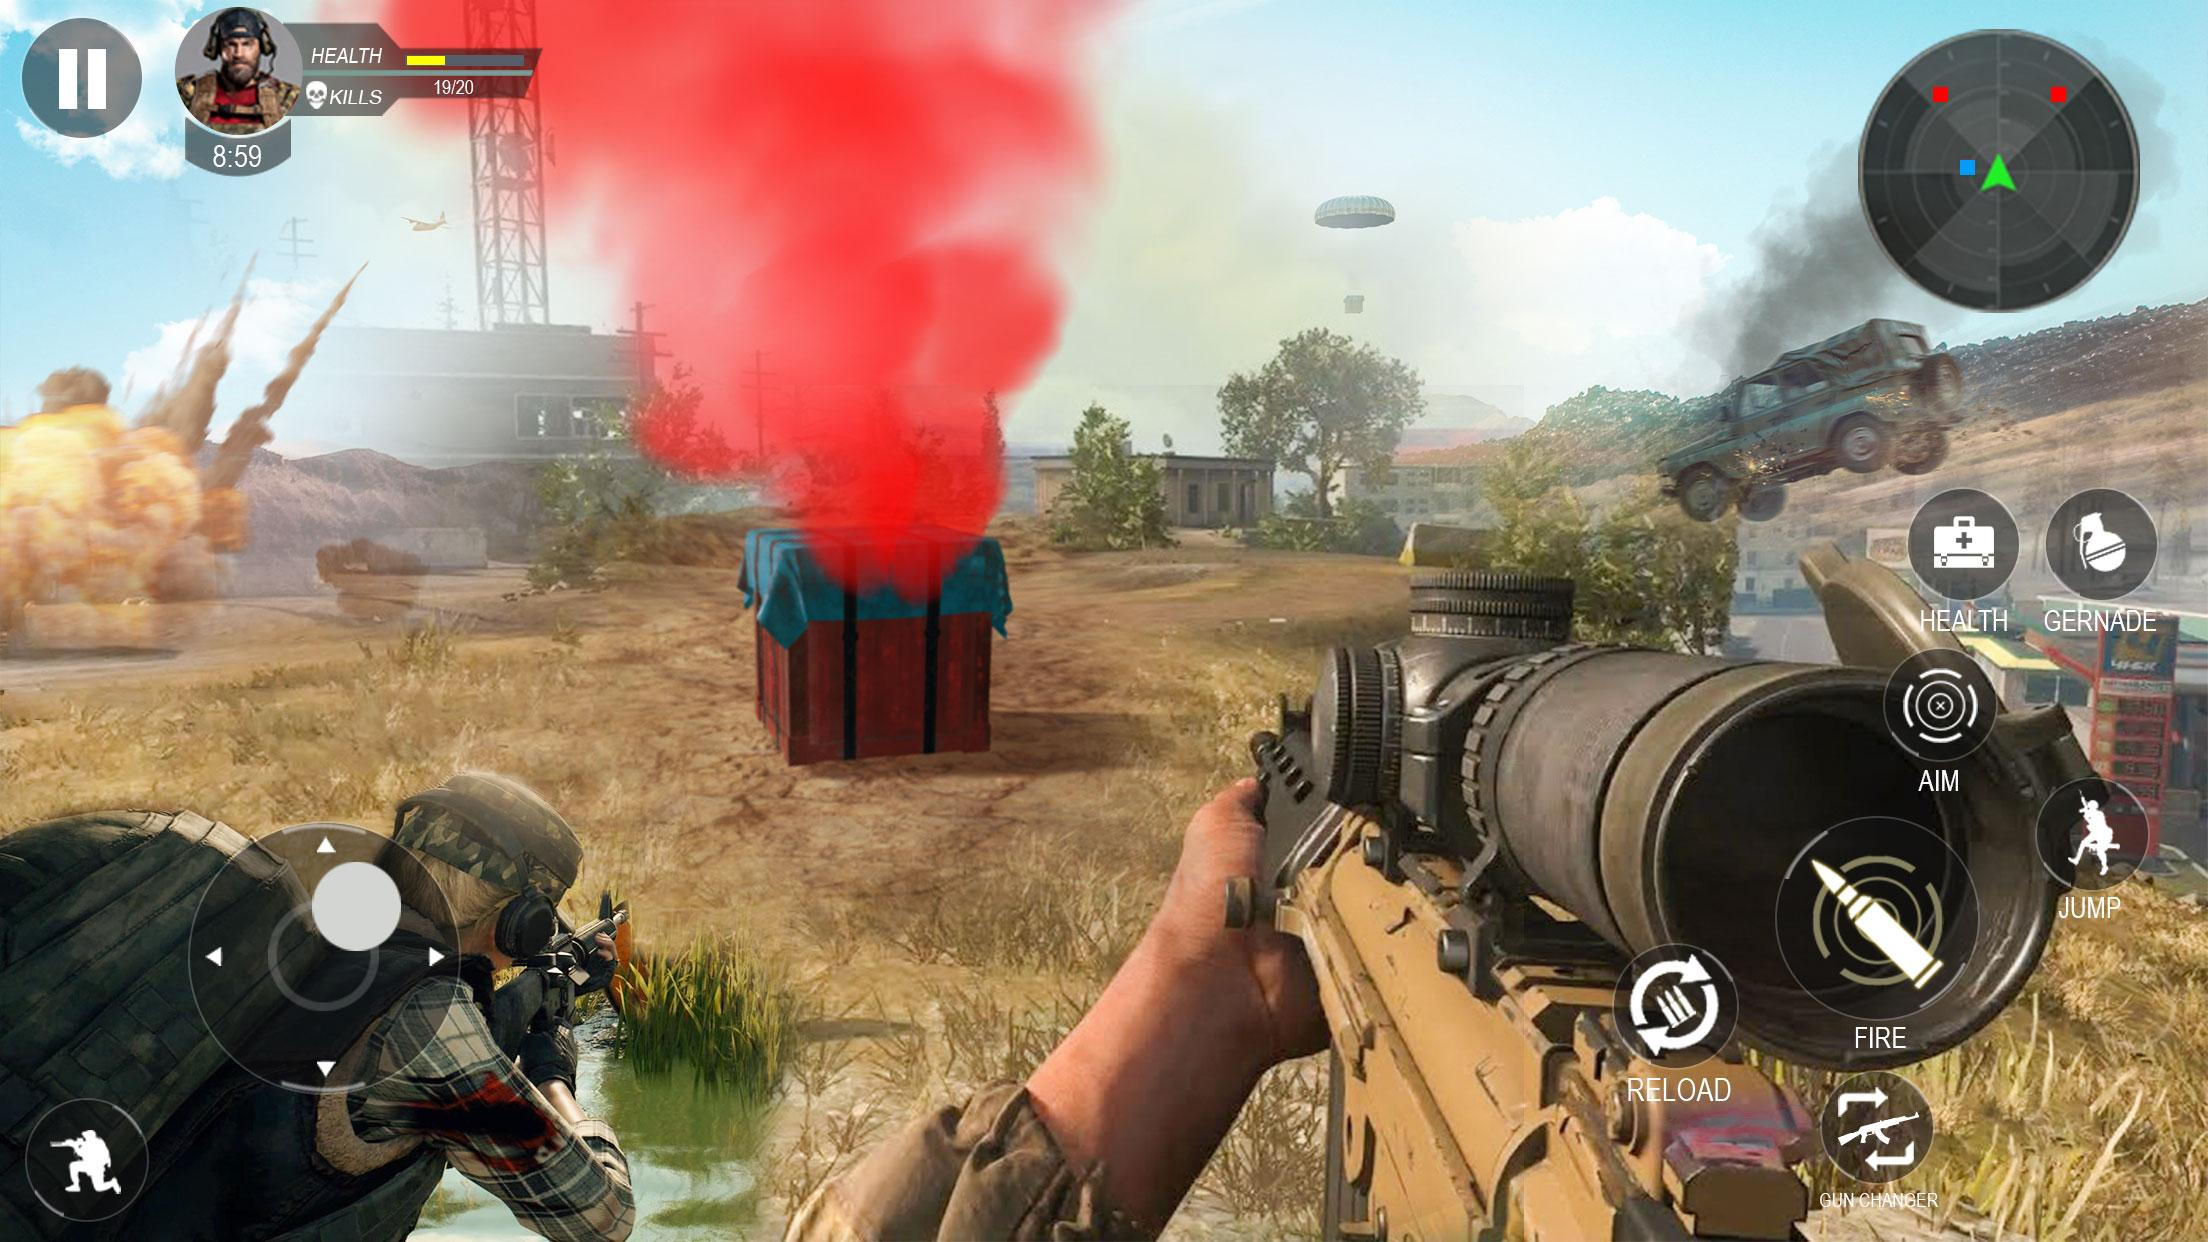 Modern Forces Free Fire Shooting New Games 2021 For Android Apk Download